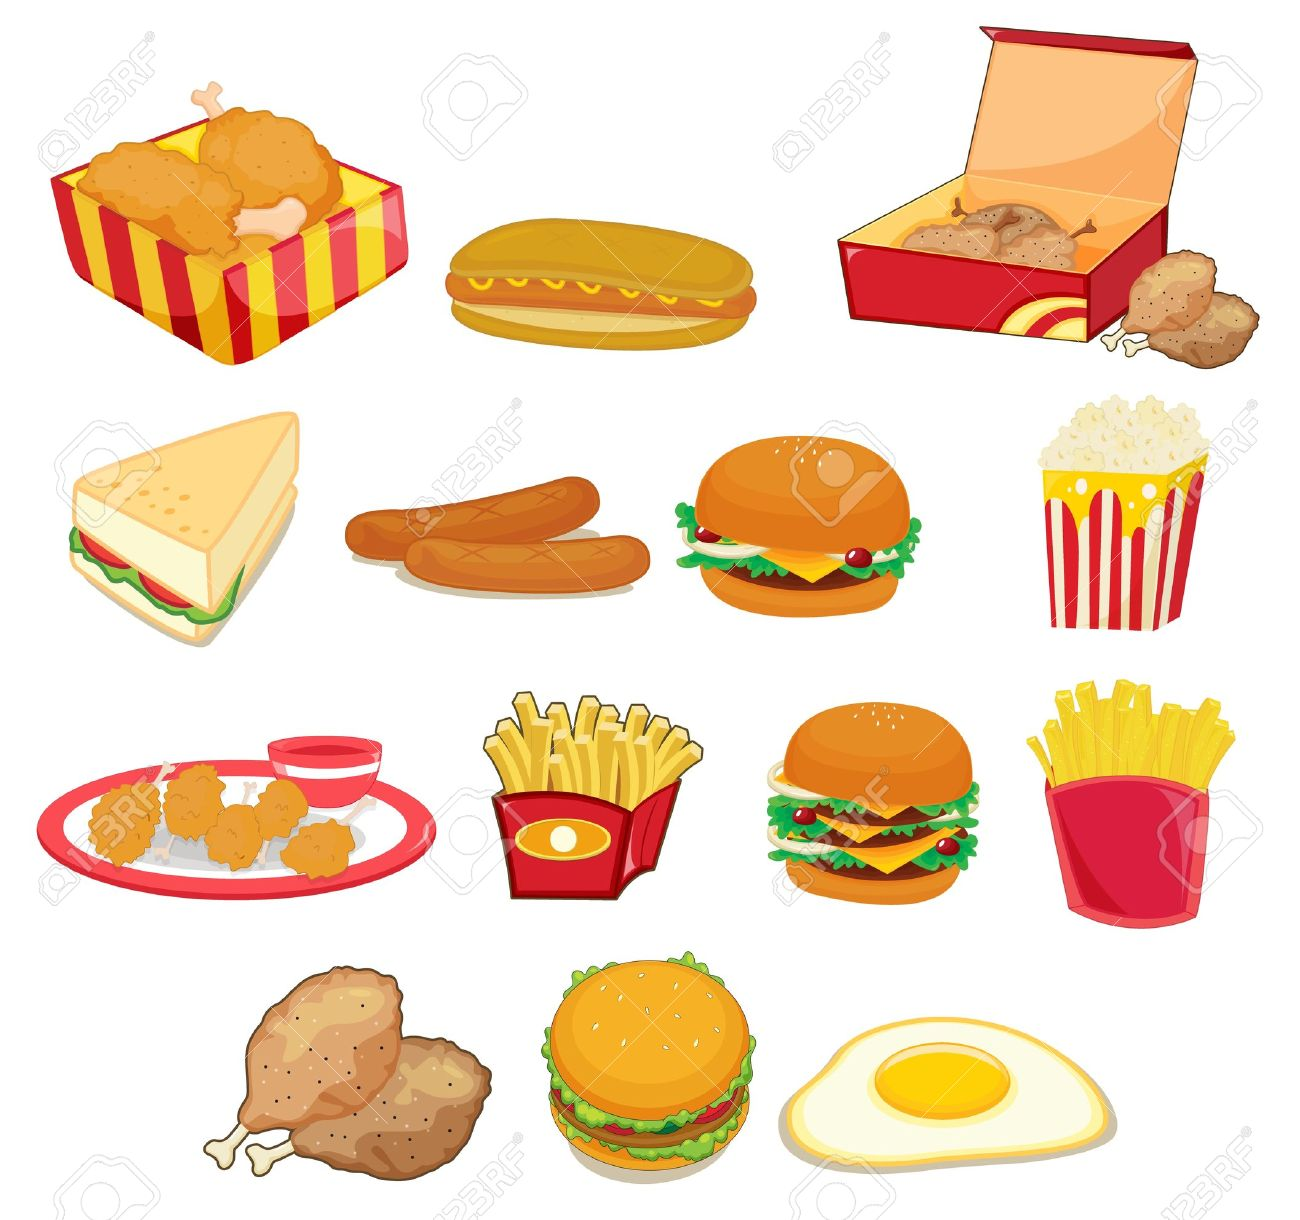 best junk food clipart 16413 clipartion com junk food clip art free junk food clipart